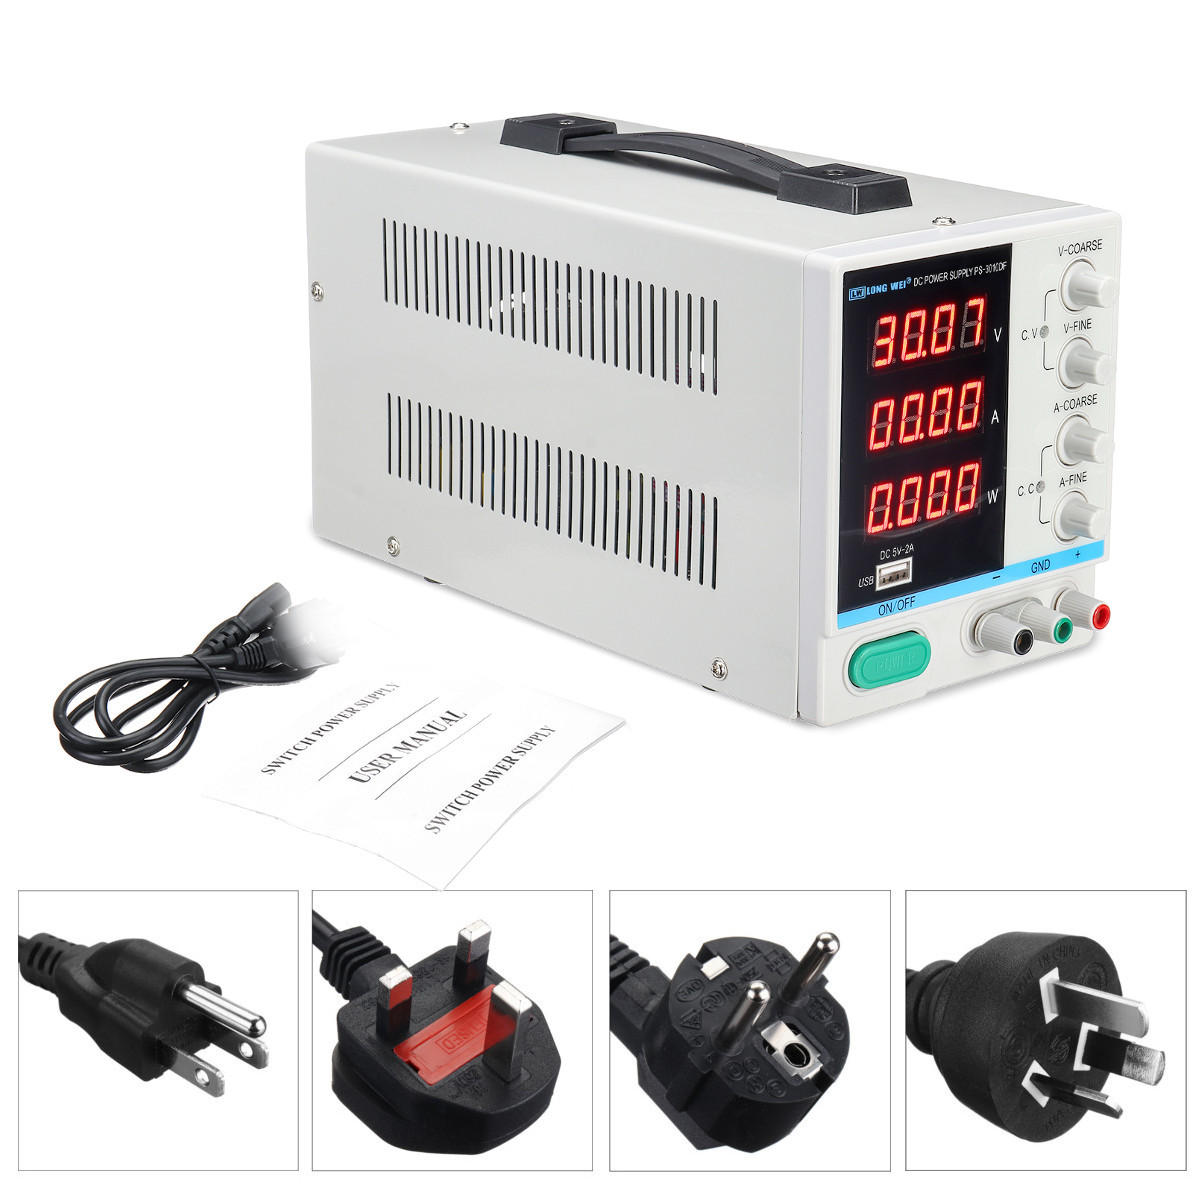 LONG WEI PS-3010DF 110V / 220V DC Fuente de alimentación 30V 10A Precisión Variable LED Laboratorio digital ajustable W / USB